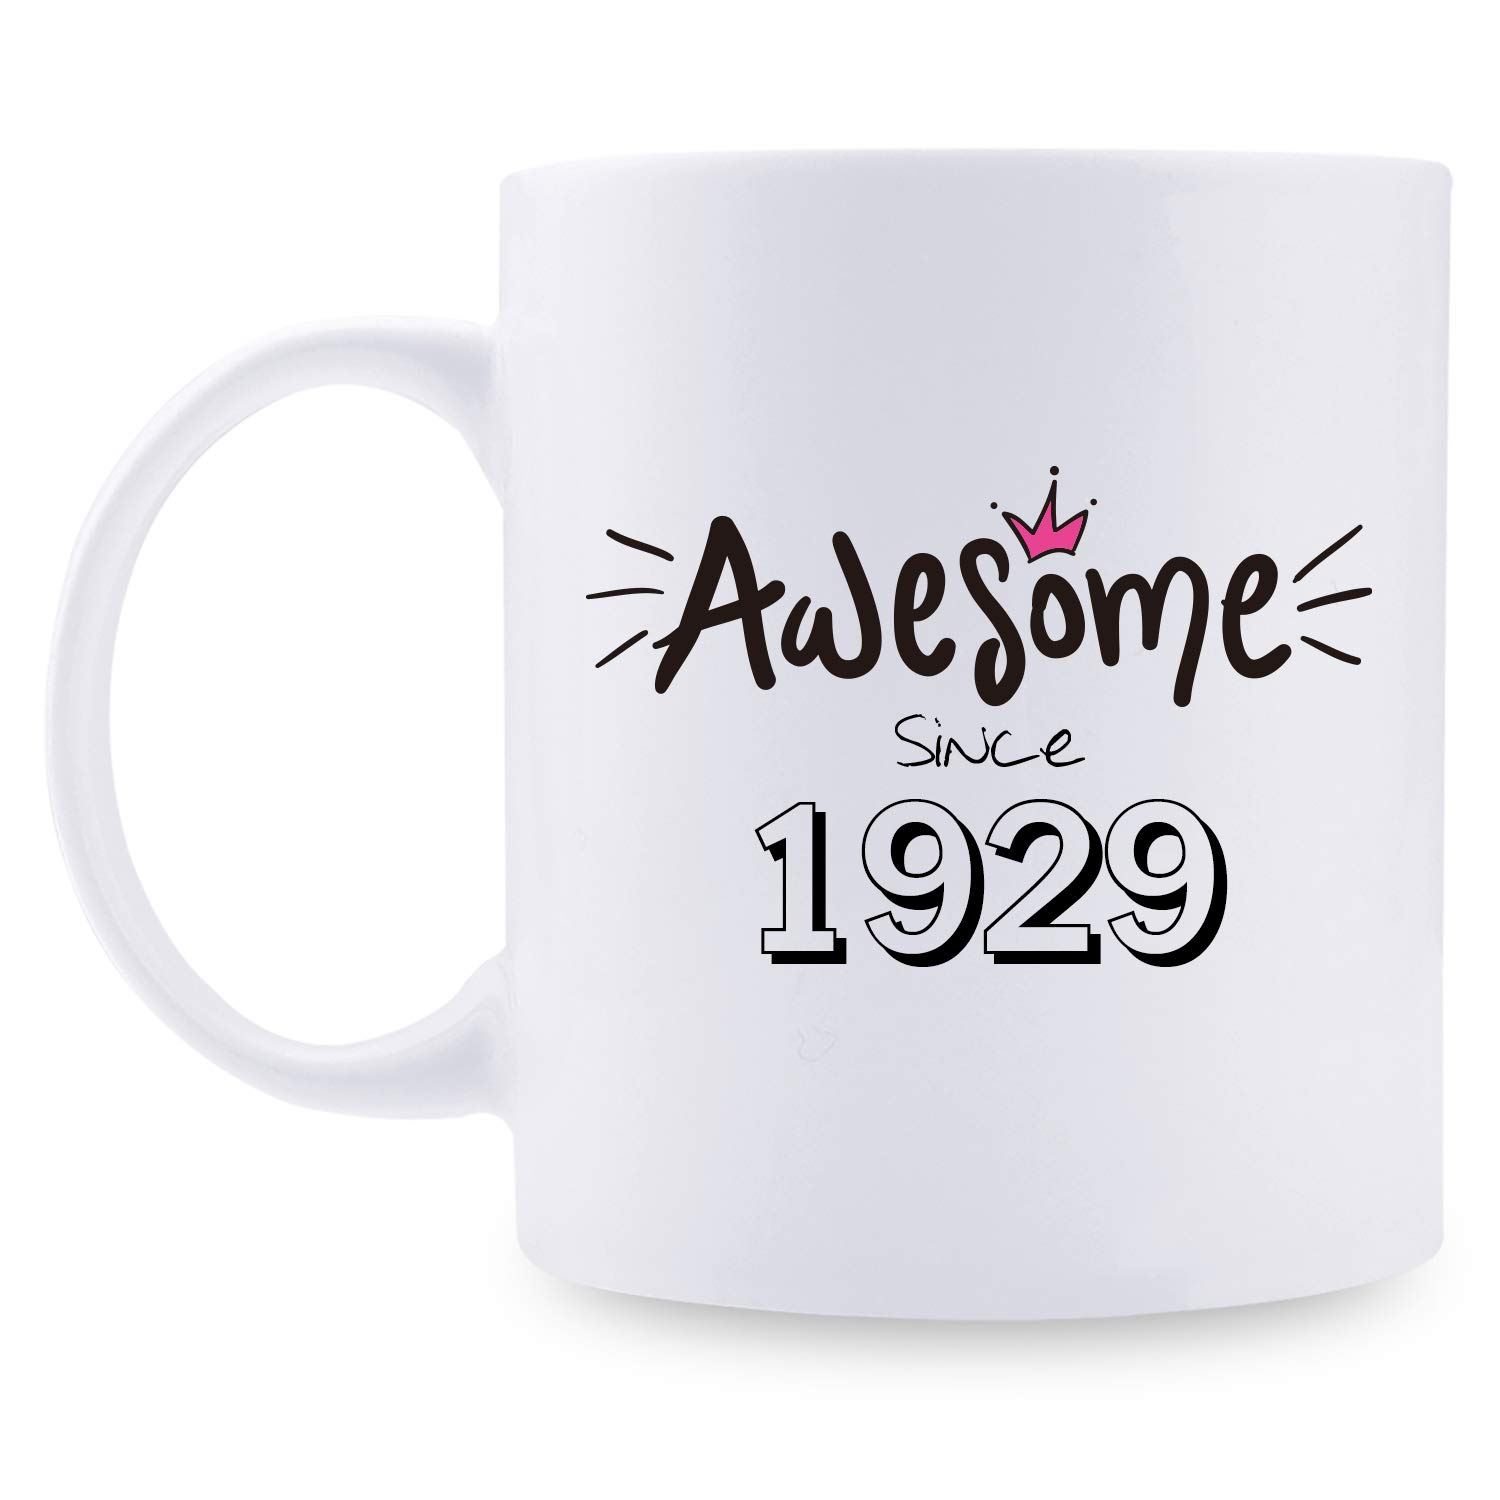 90th Birthday Gifts for Women - 1929 Birthday Gifts for Women, 90 Years Old Birthday Gifts Coffee Mug for Mom, Wife, Friend, Sister, Her, Colleague, Coworker - 11oz